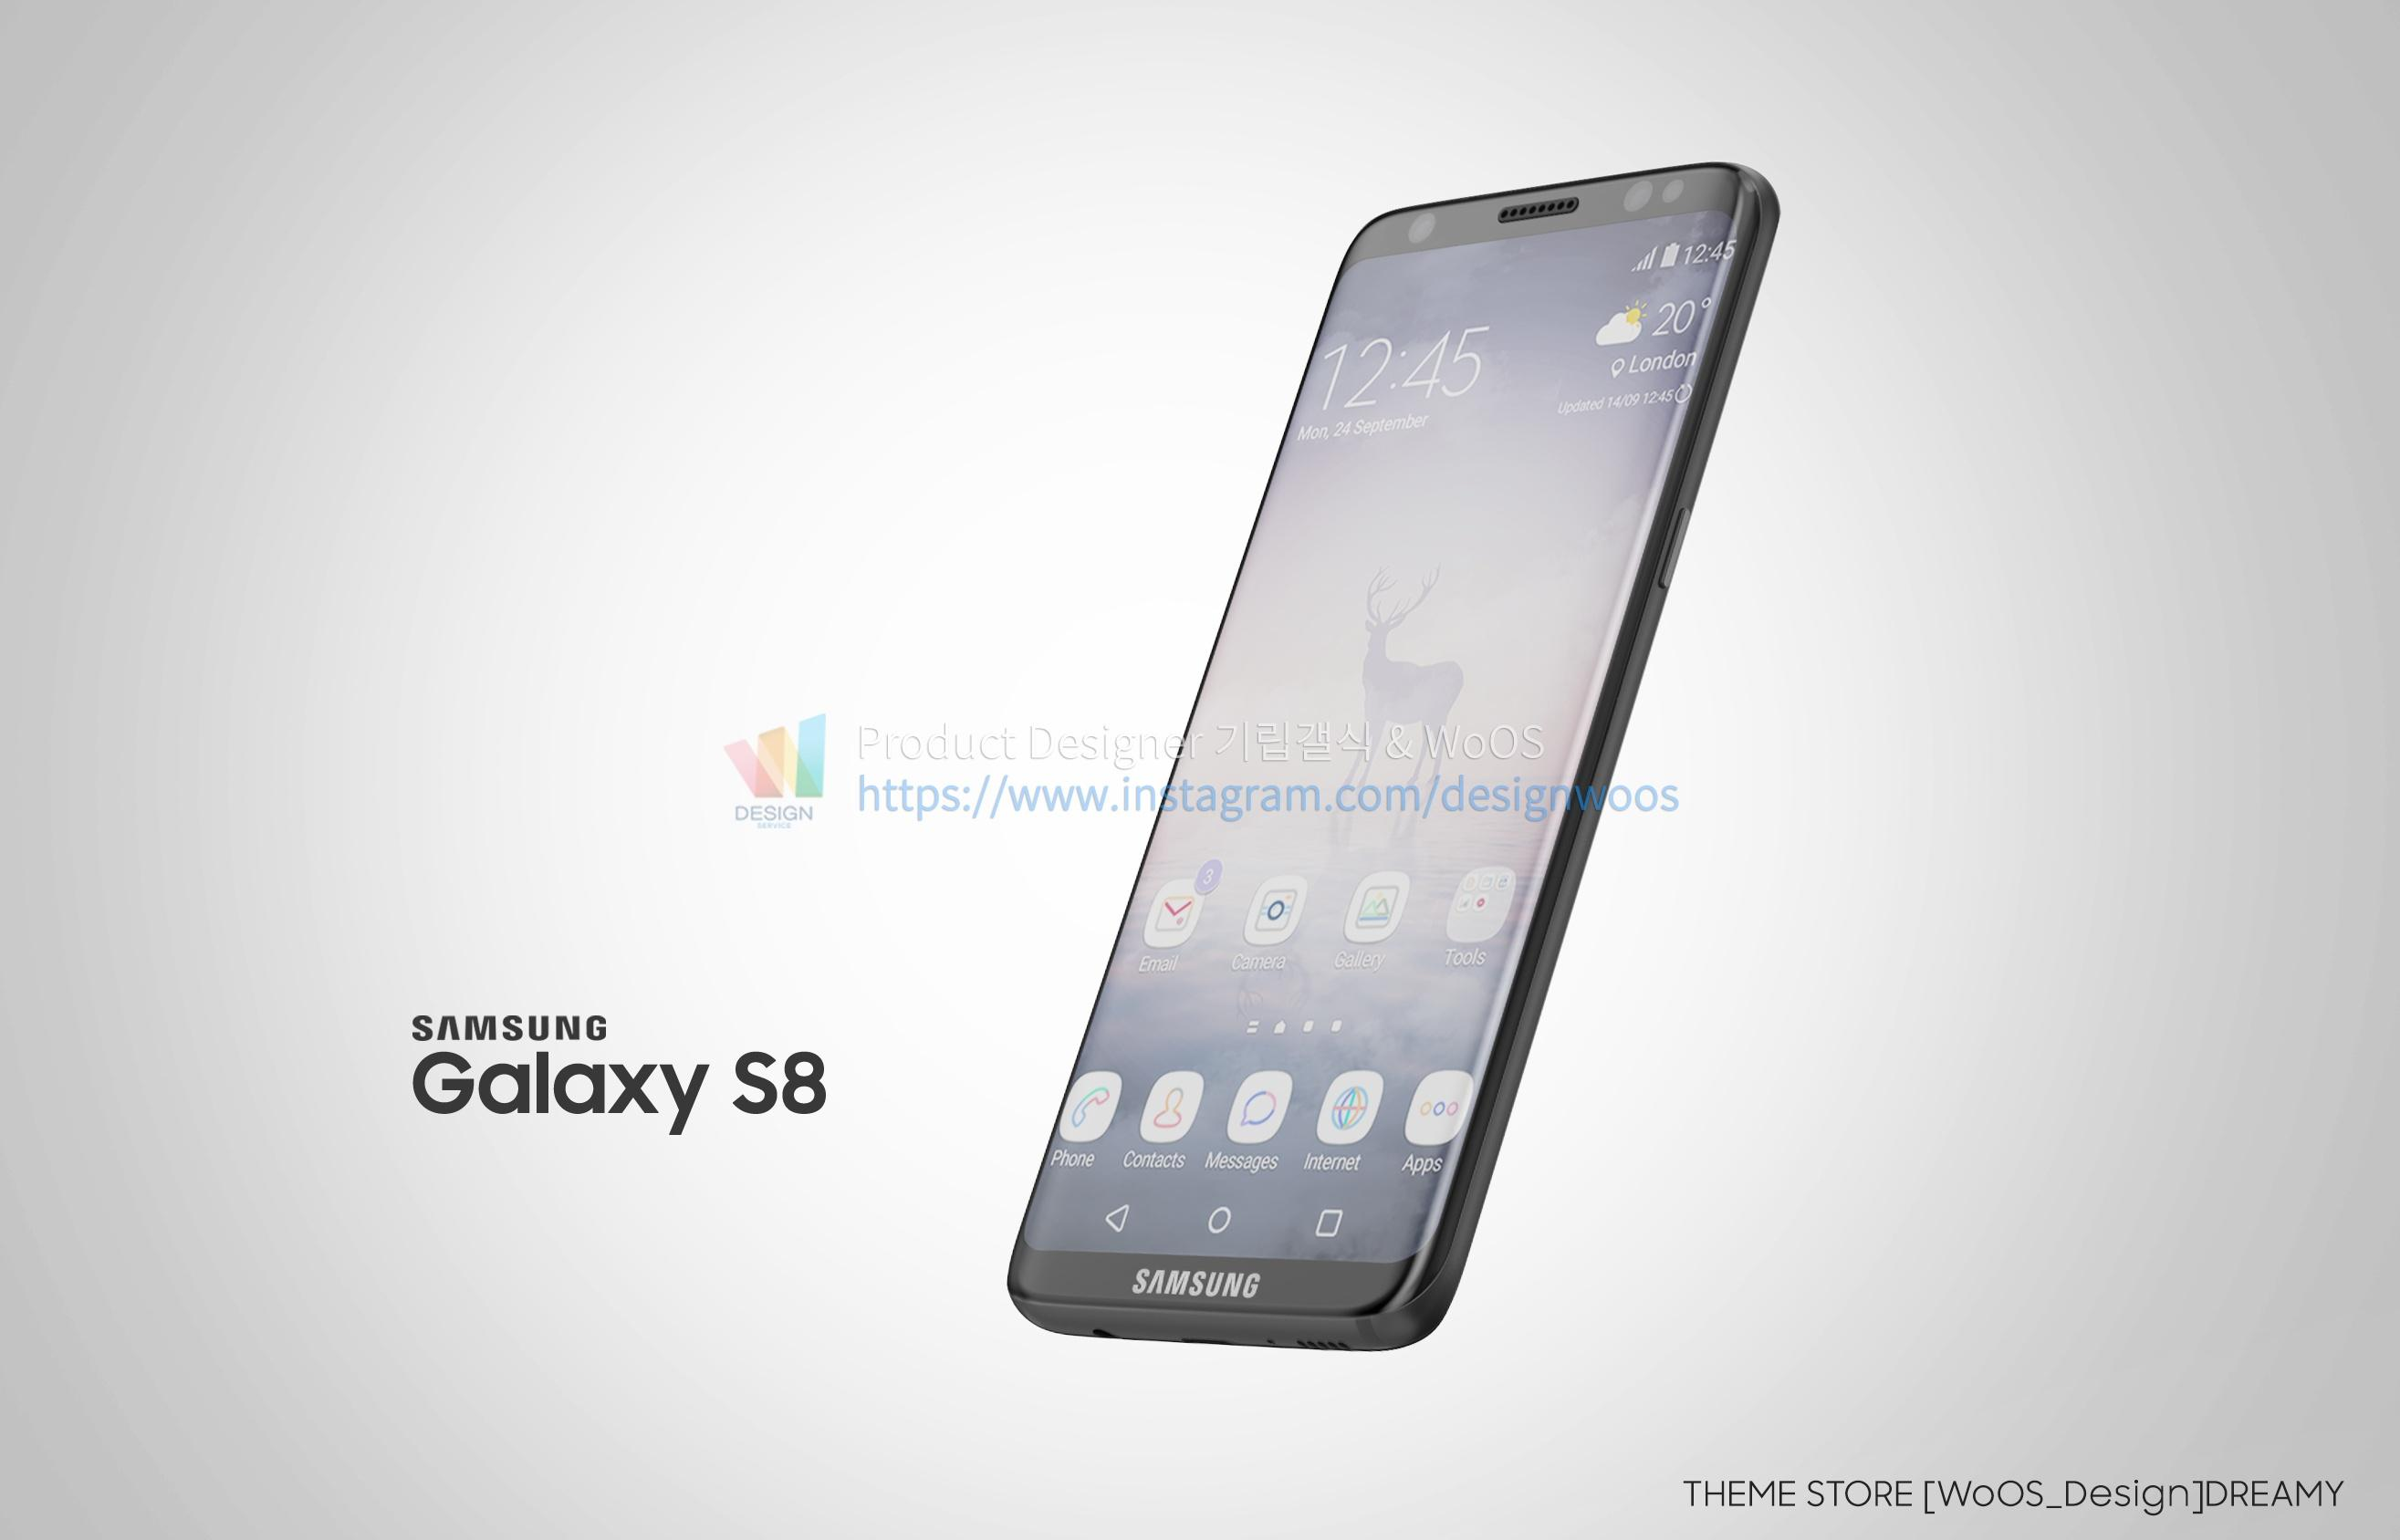 Samsung Galaxy S8 release date nears as